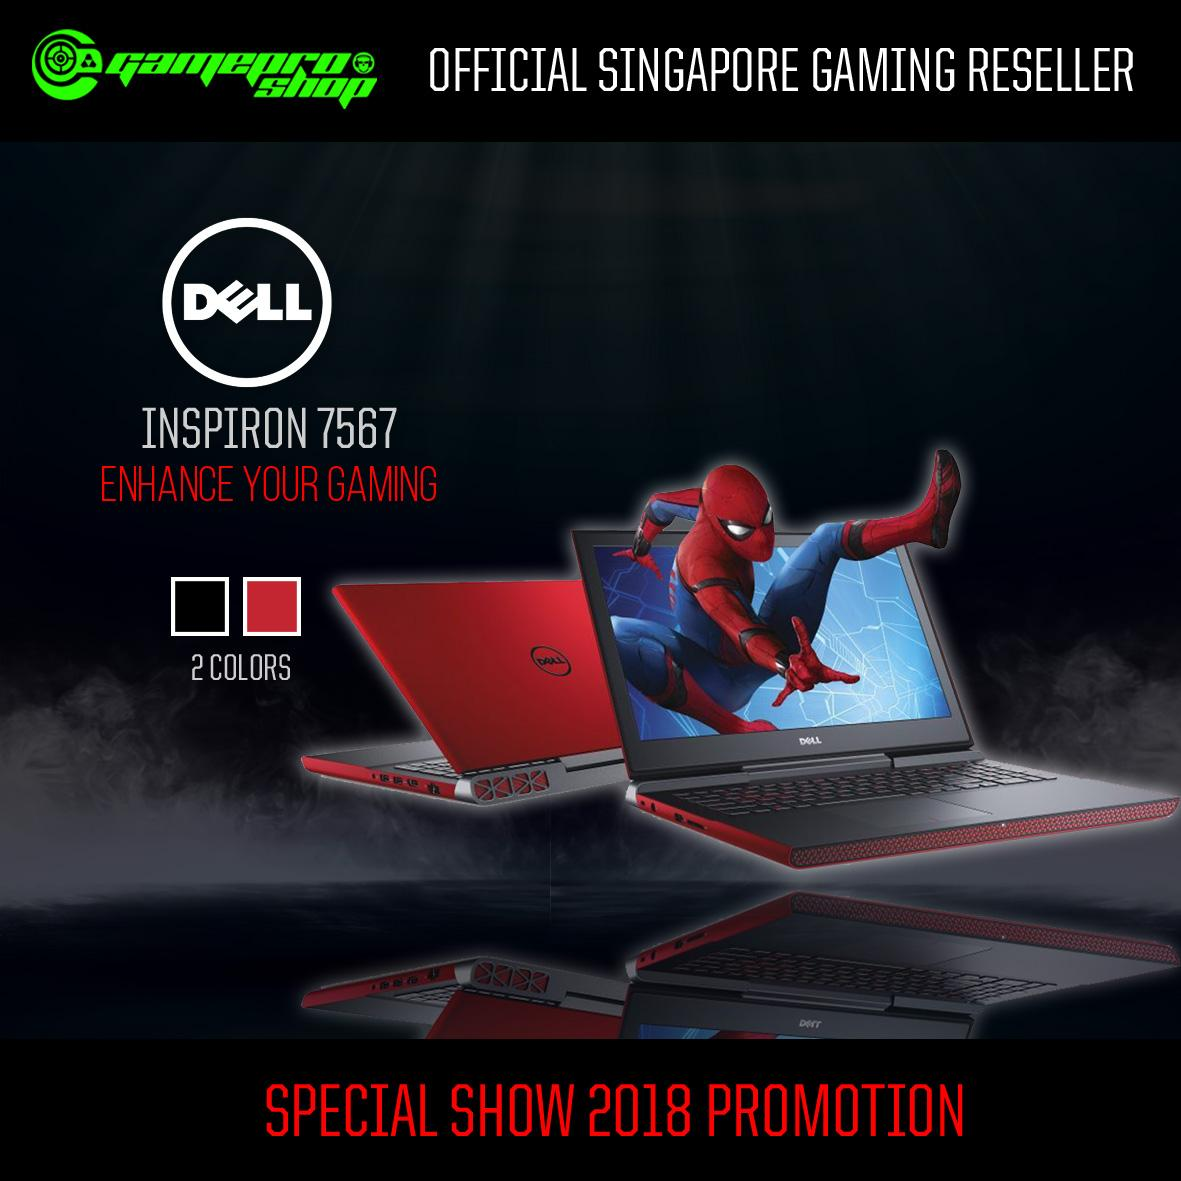 DELL 7567 Inspiron 15 7000 Gaming Laptop (RED) – i7-7700HQ,GTX1050TI 4GB,WIN10 *11.11 PROMO*